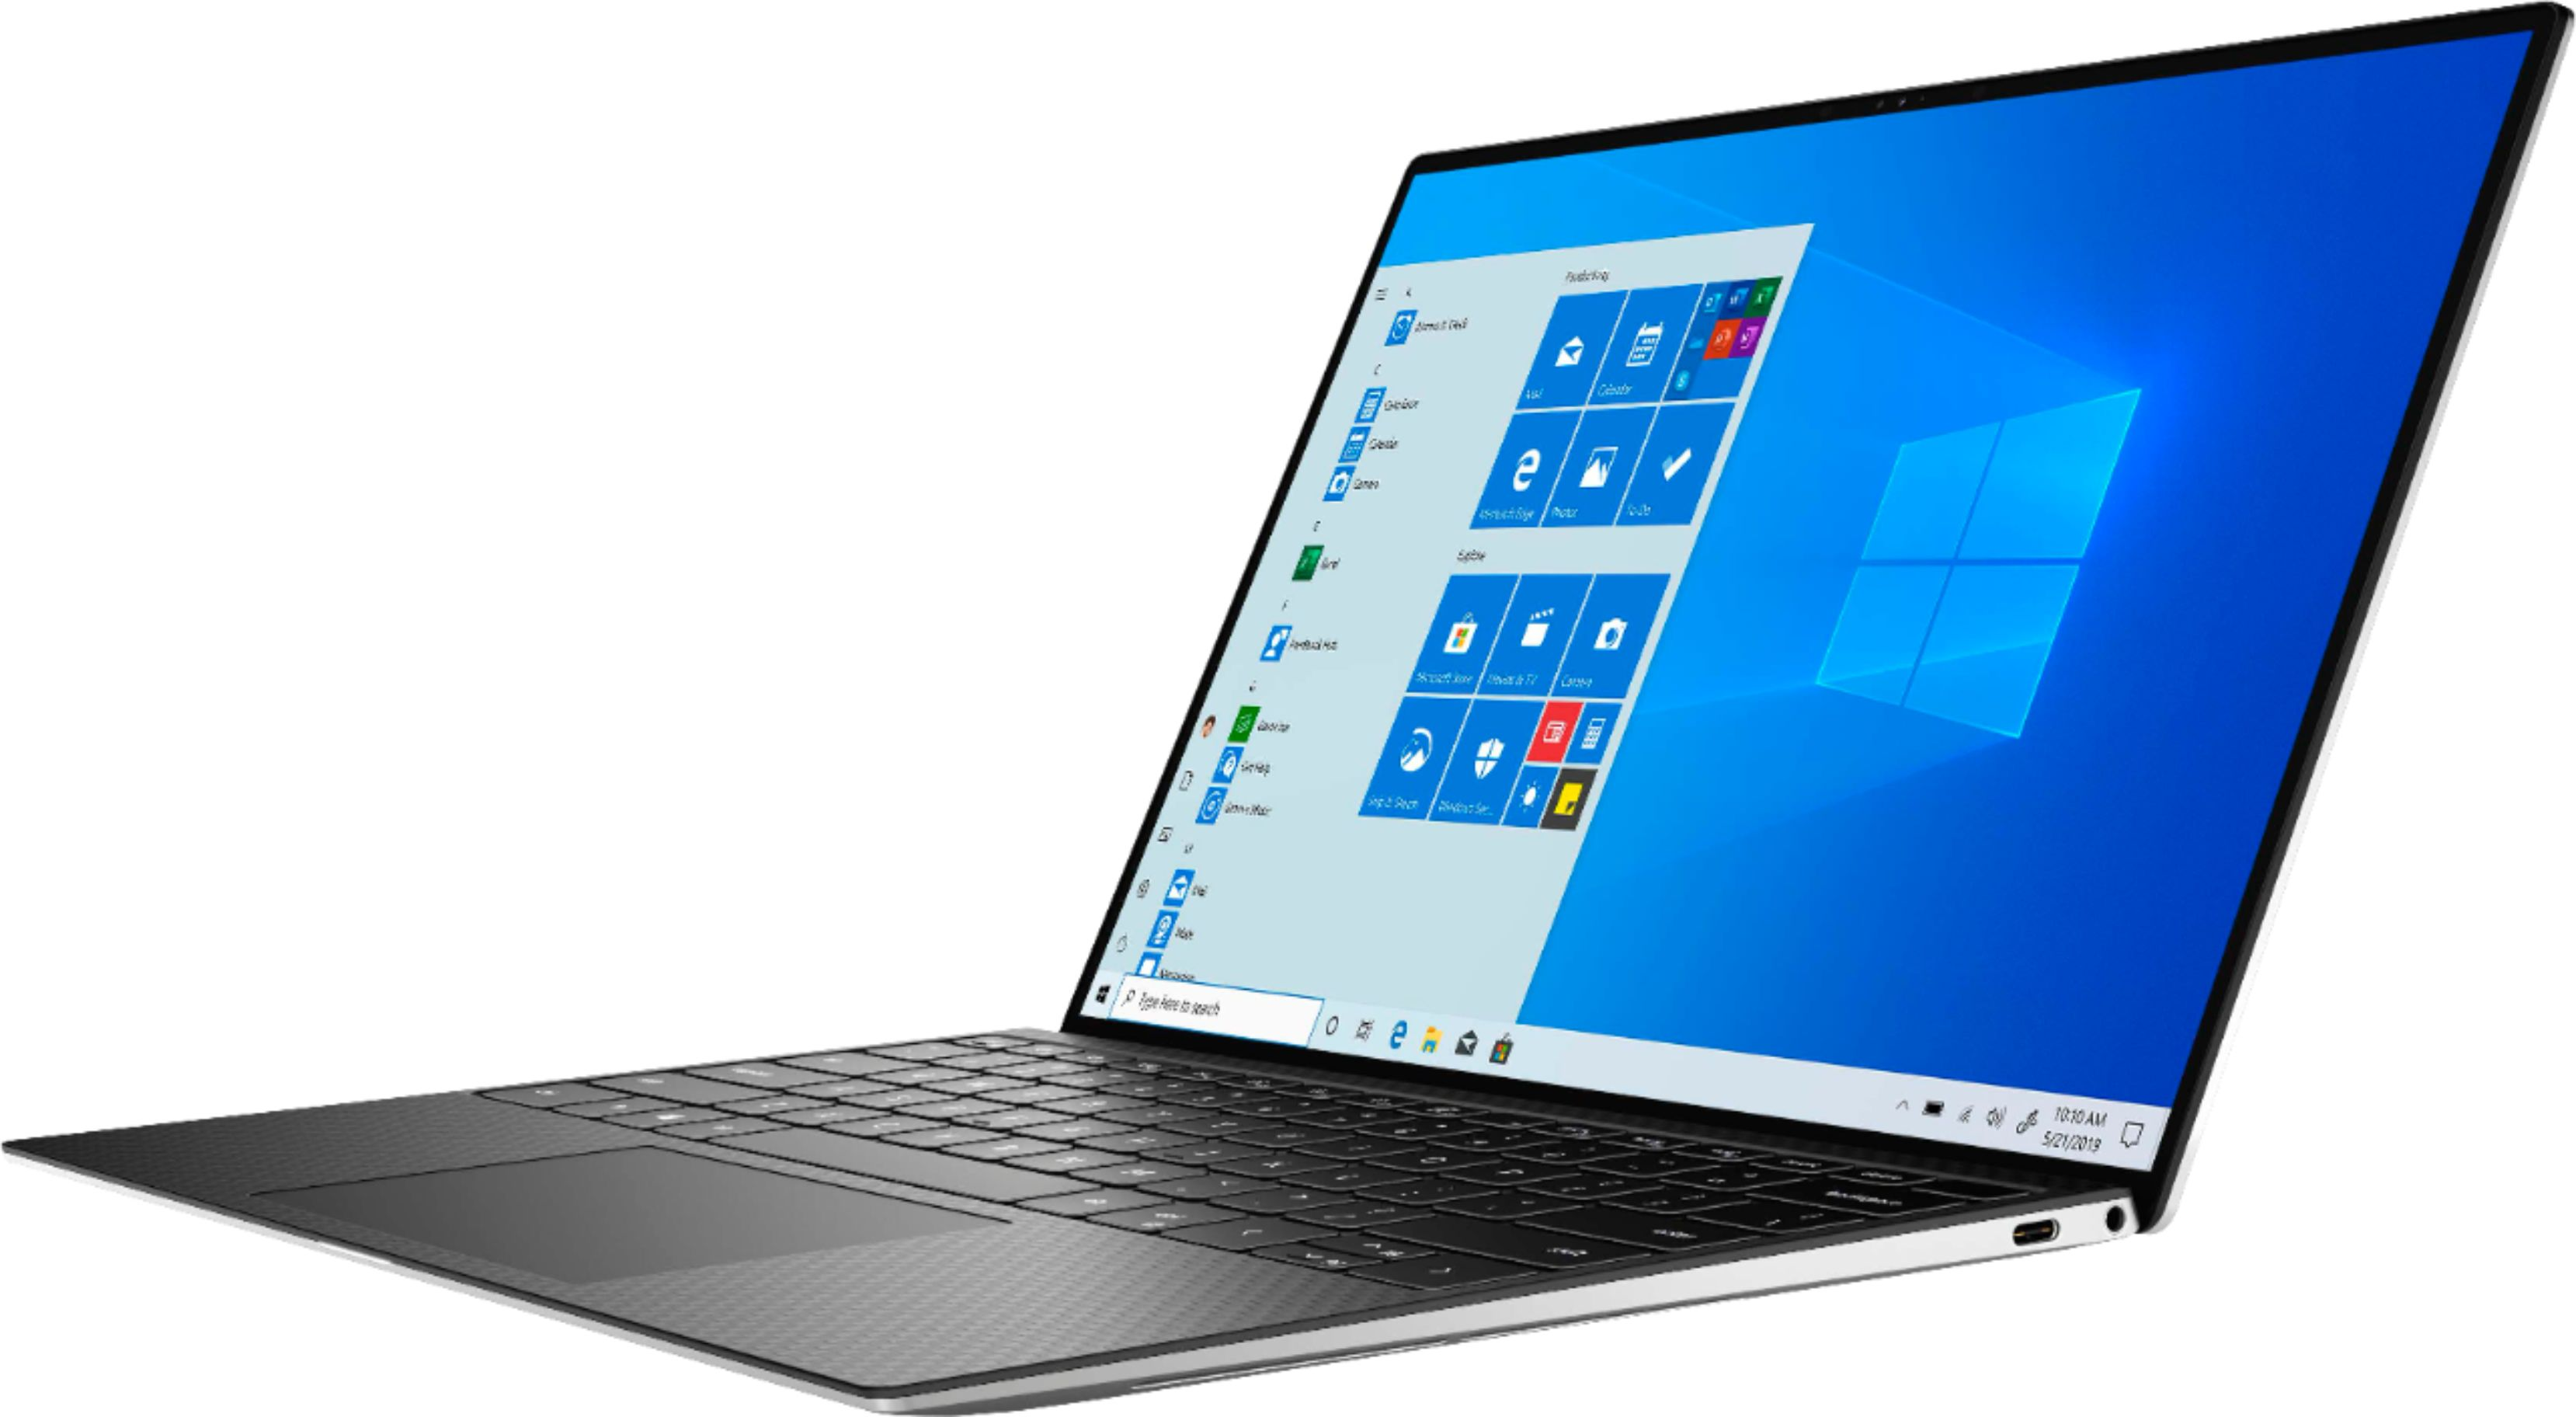 """Left Zoom. Dell - XPS 13.4"""" FHD+ Touch Laptop - Engineered for Mobile Performance - Intel Core i7 - 8GB Memory - 512GB SSD - Platinum Silver."""